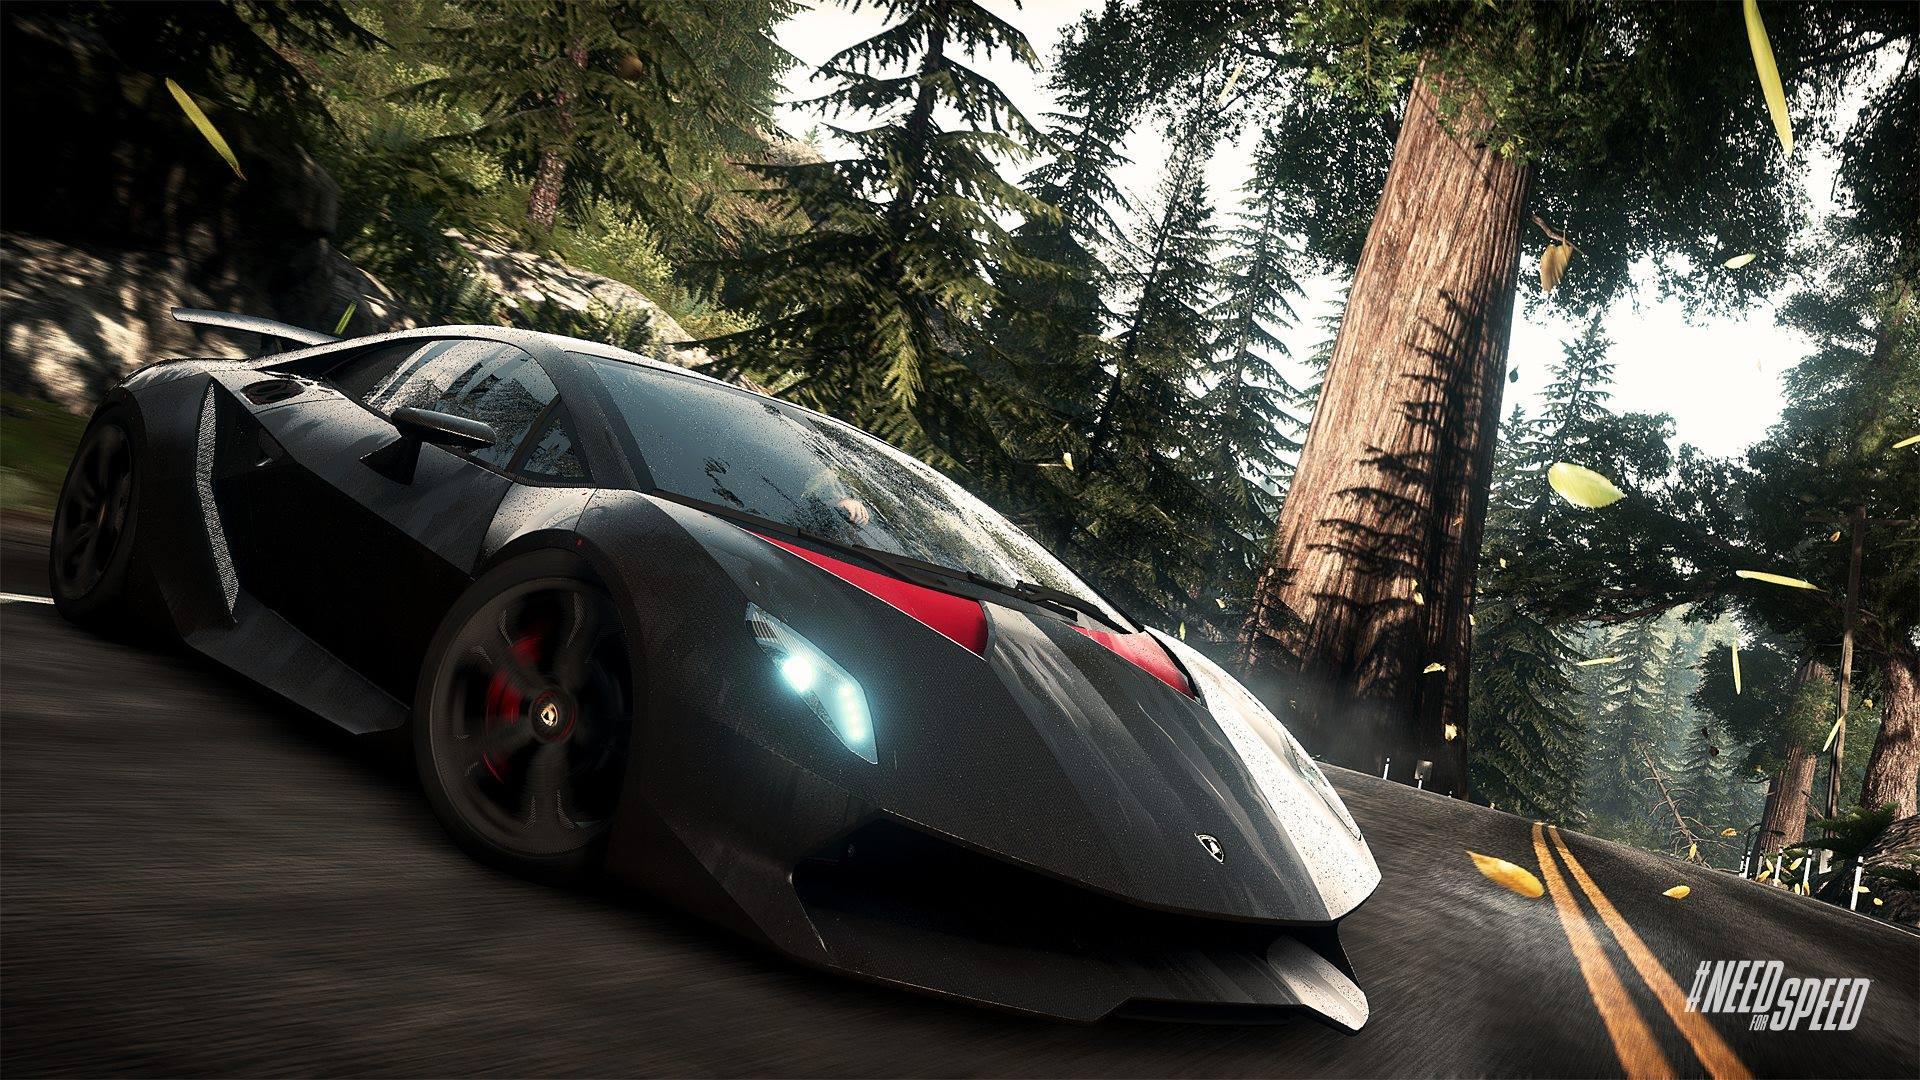 Need for Speed Movie tie-in DLC released for Need for Speed: Rivals